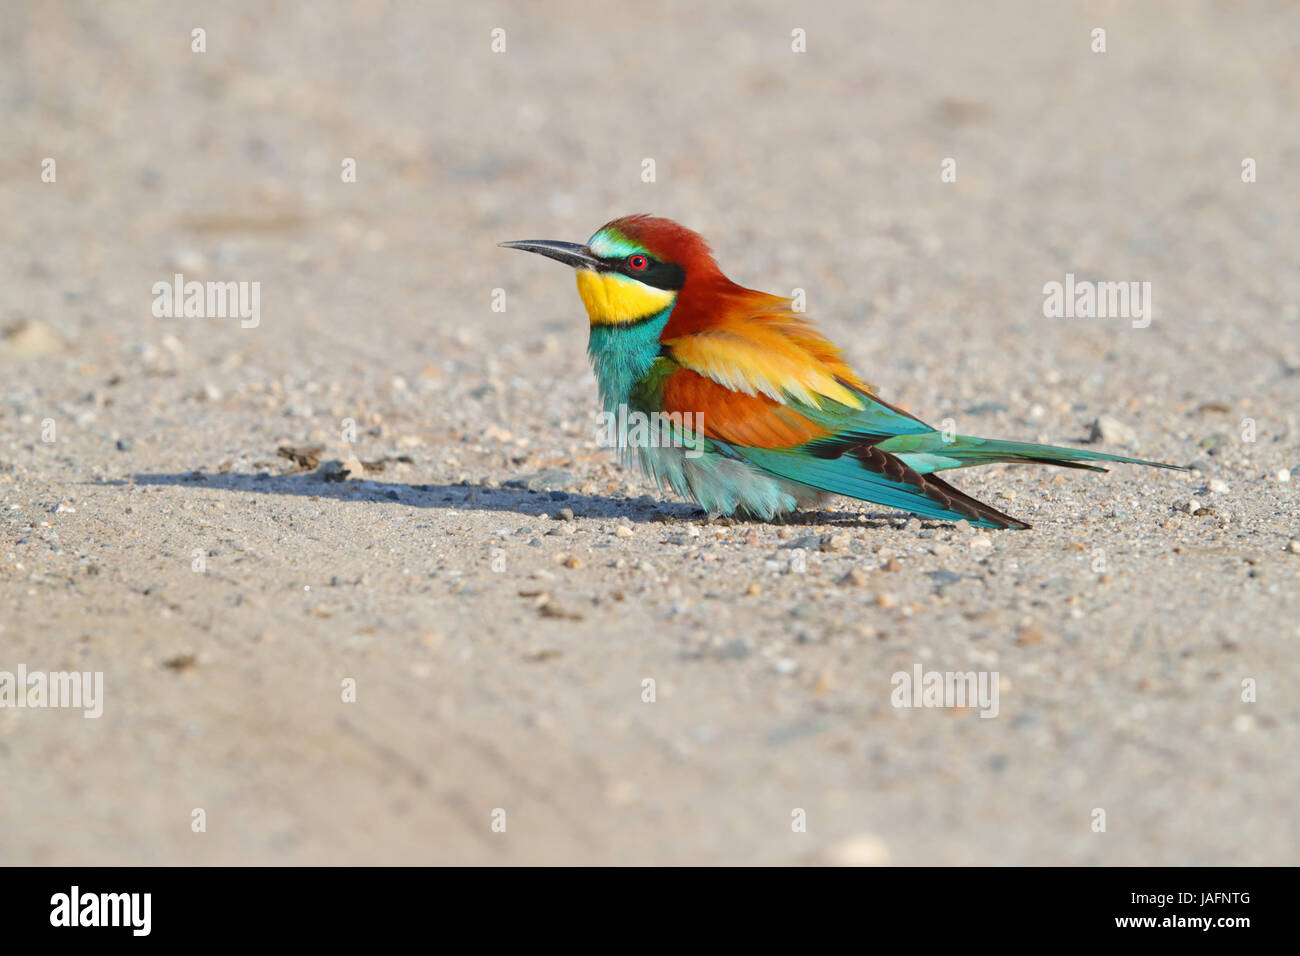 Adult European Bee-eater (Merops apiaster) in Northern Greece Stock Photo